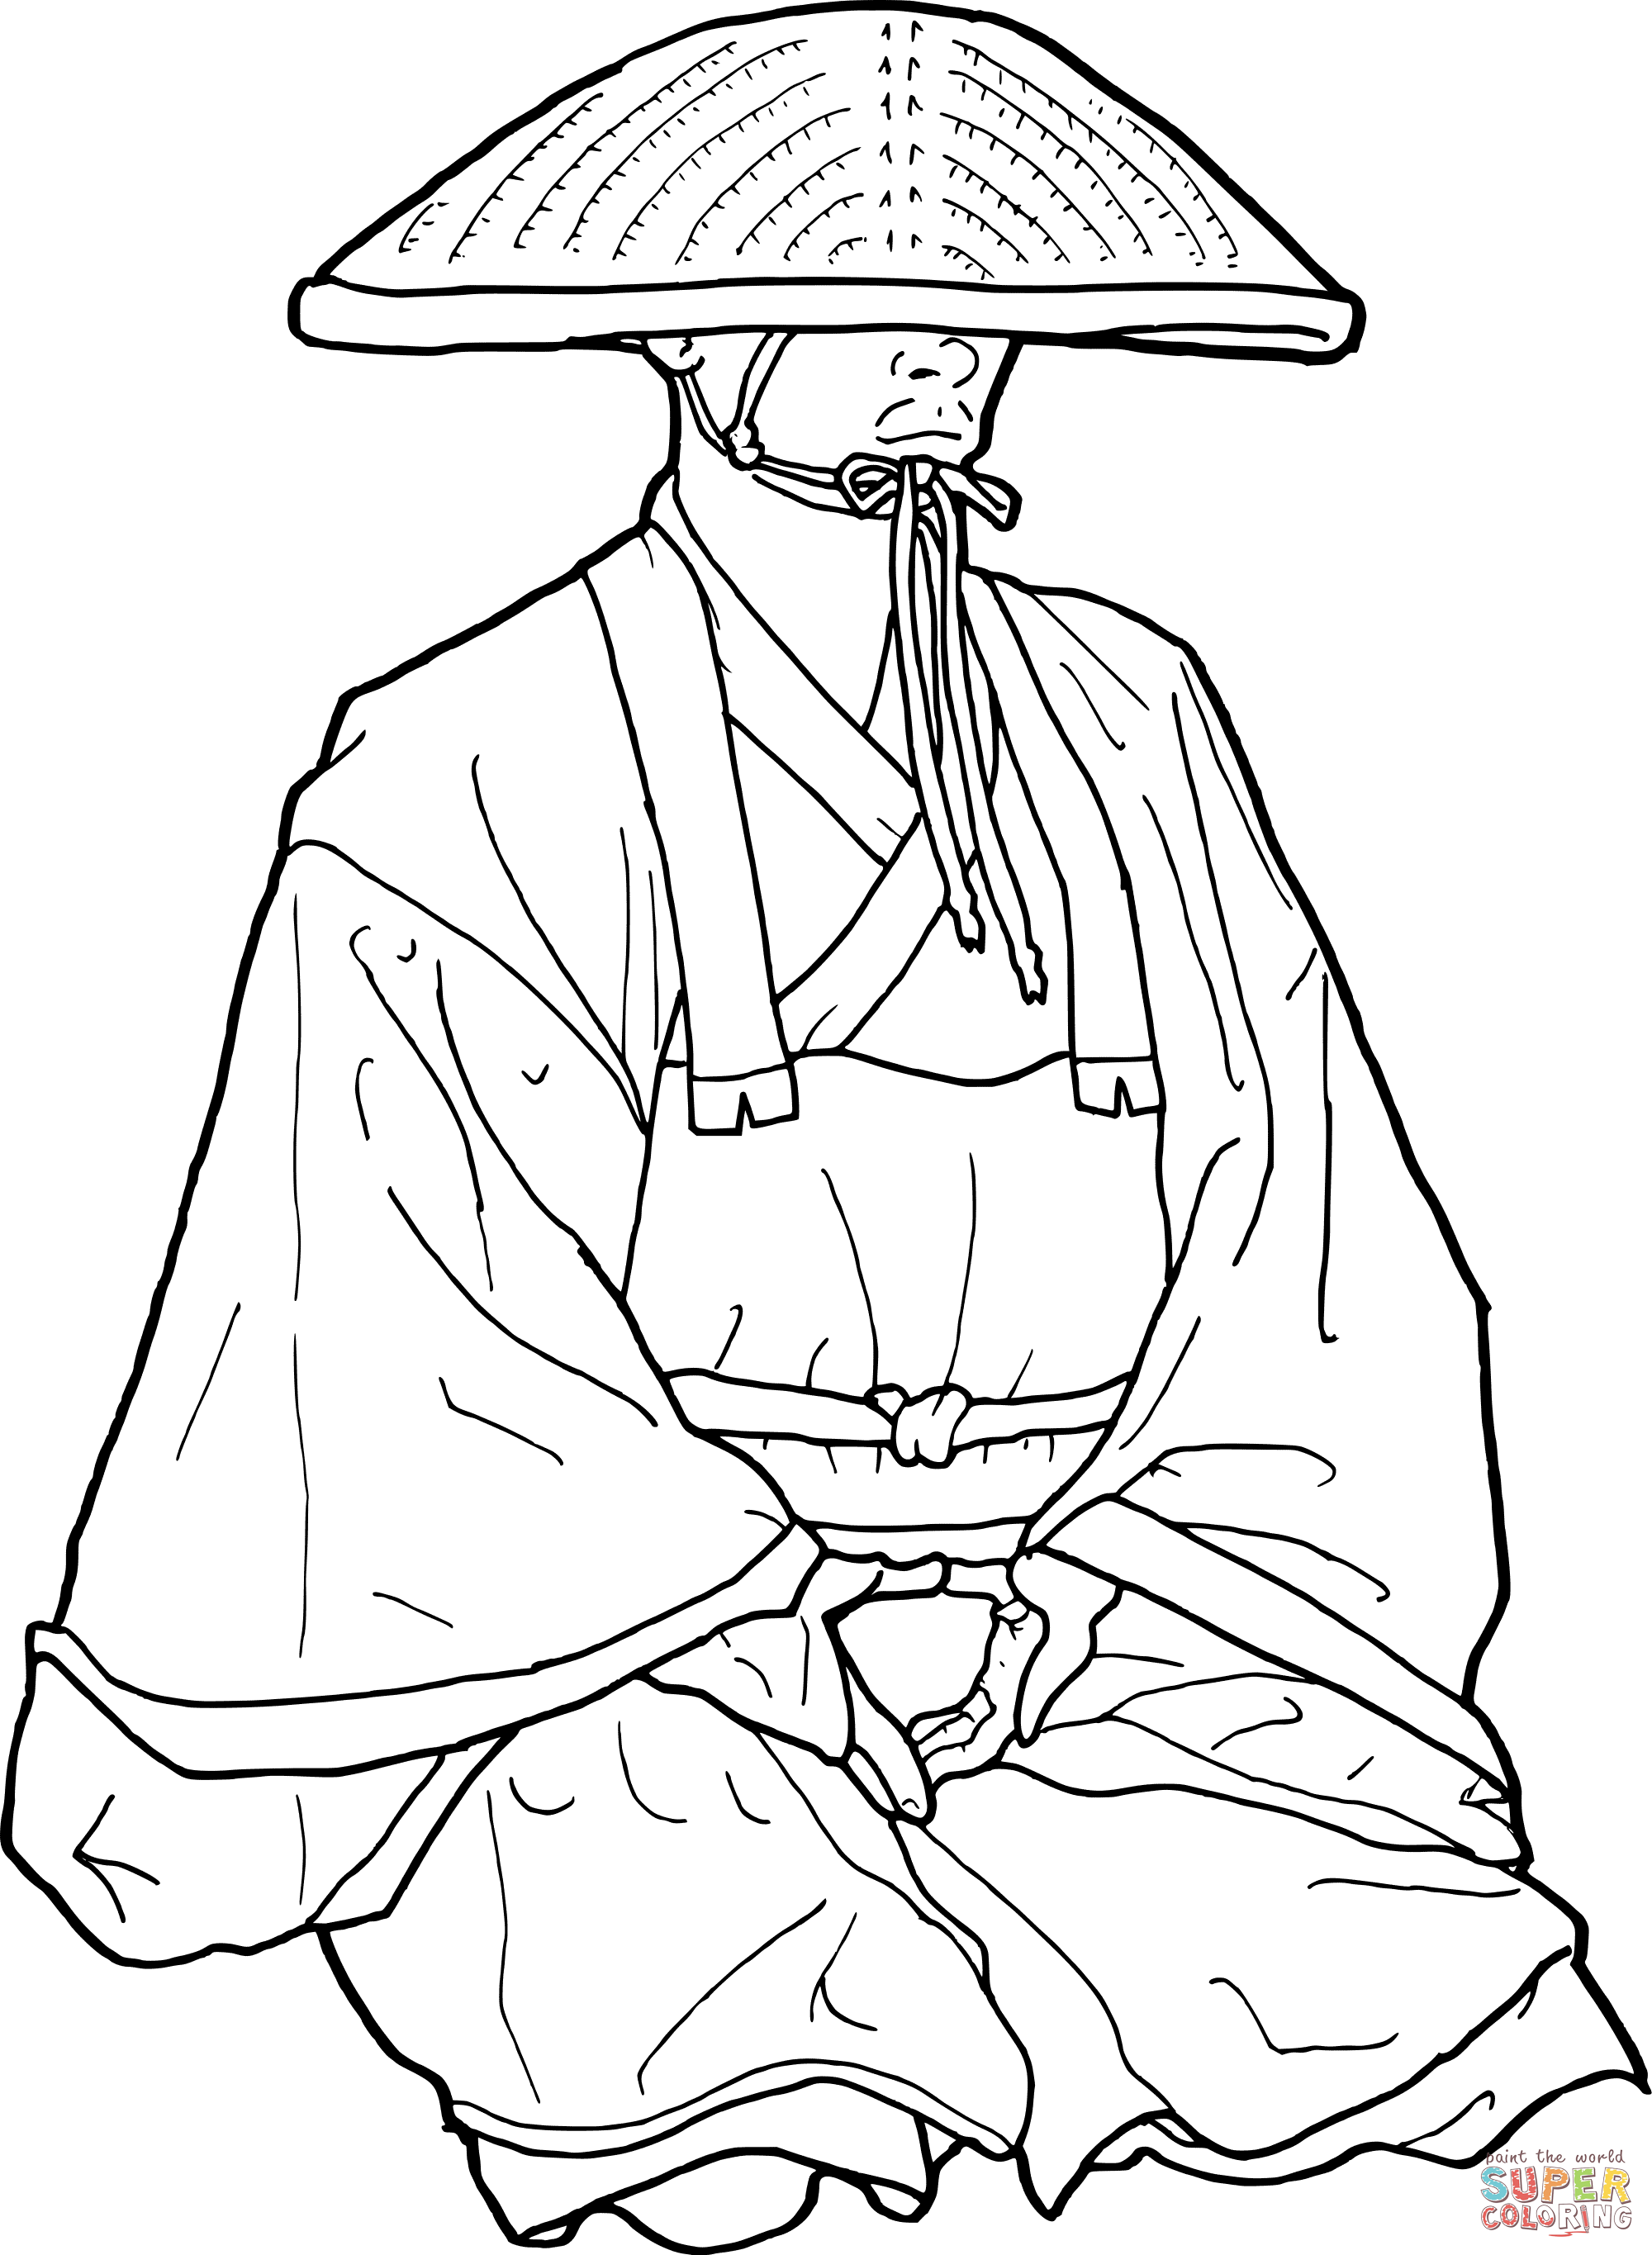 Monk coloring #2, Download drawings